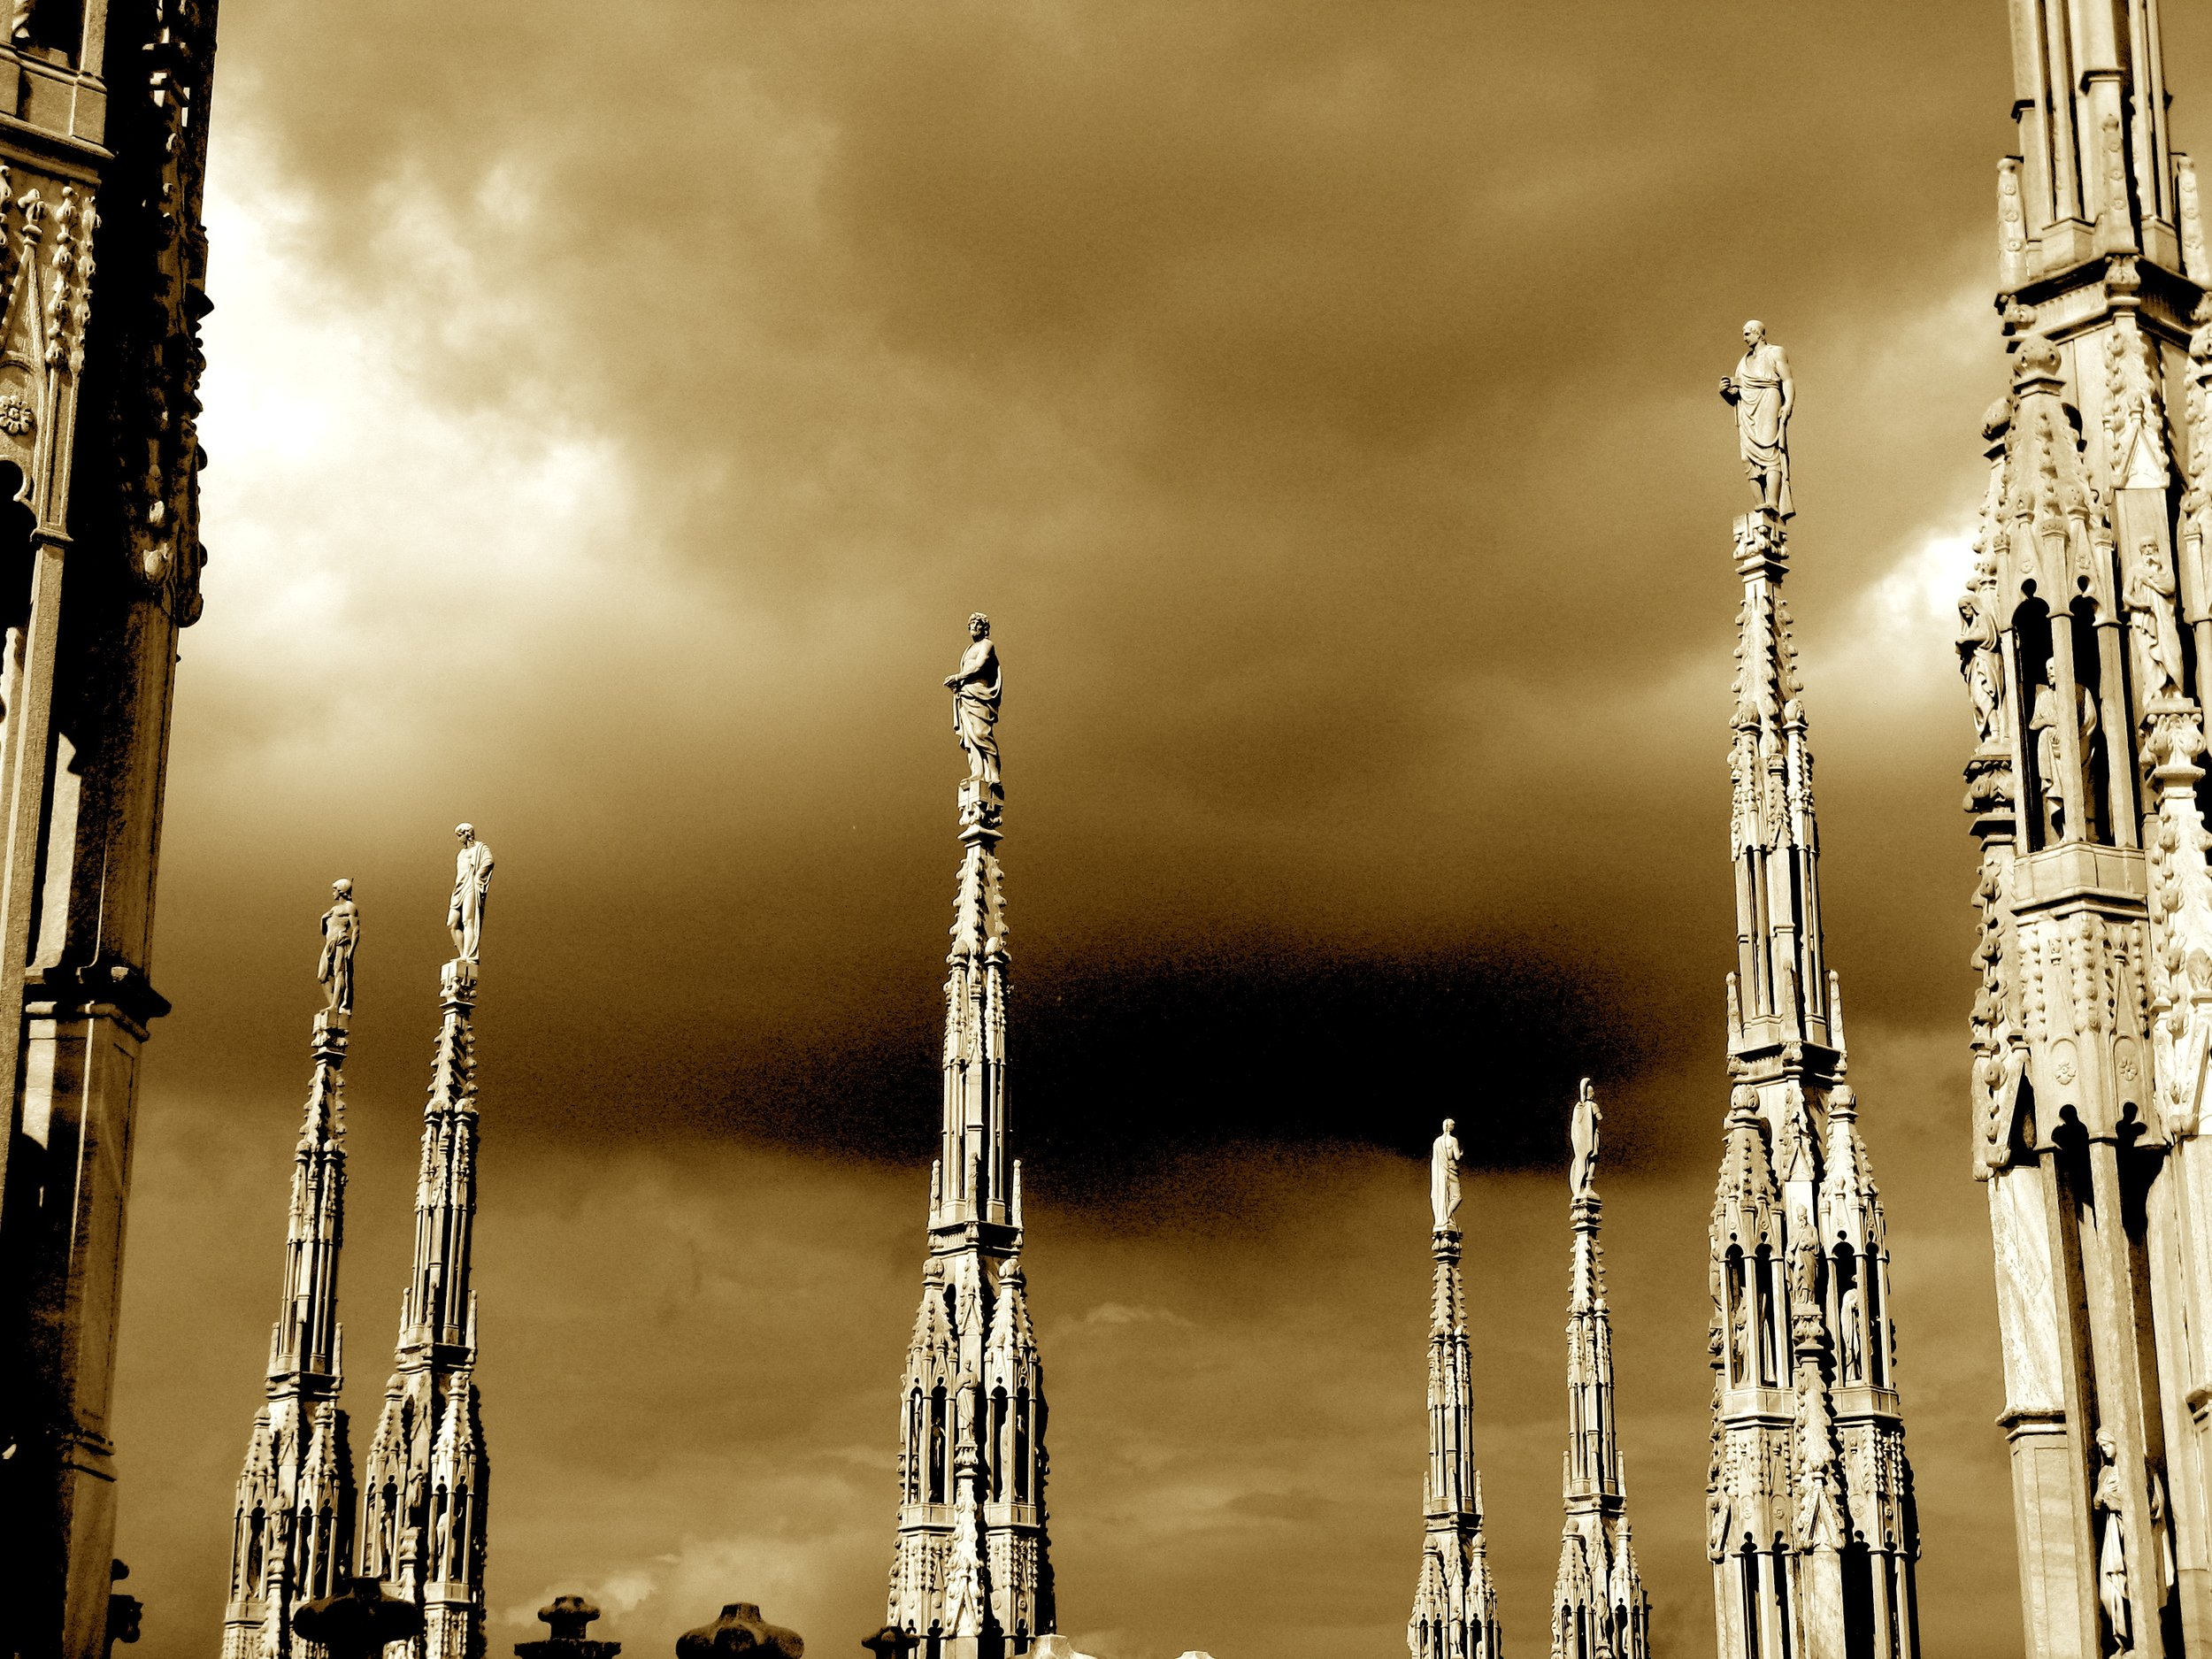 Delicate spires topped with religious figures are part of the elaborately decorated Duomo